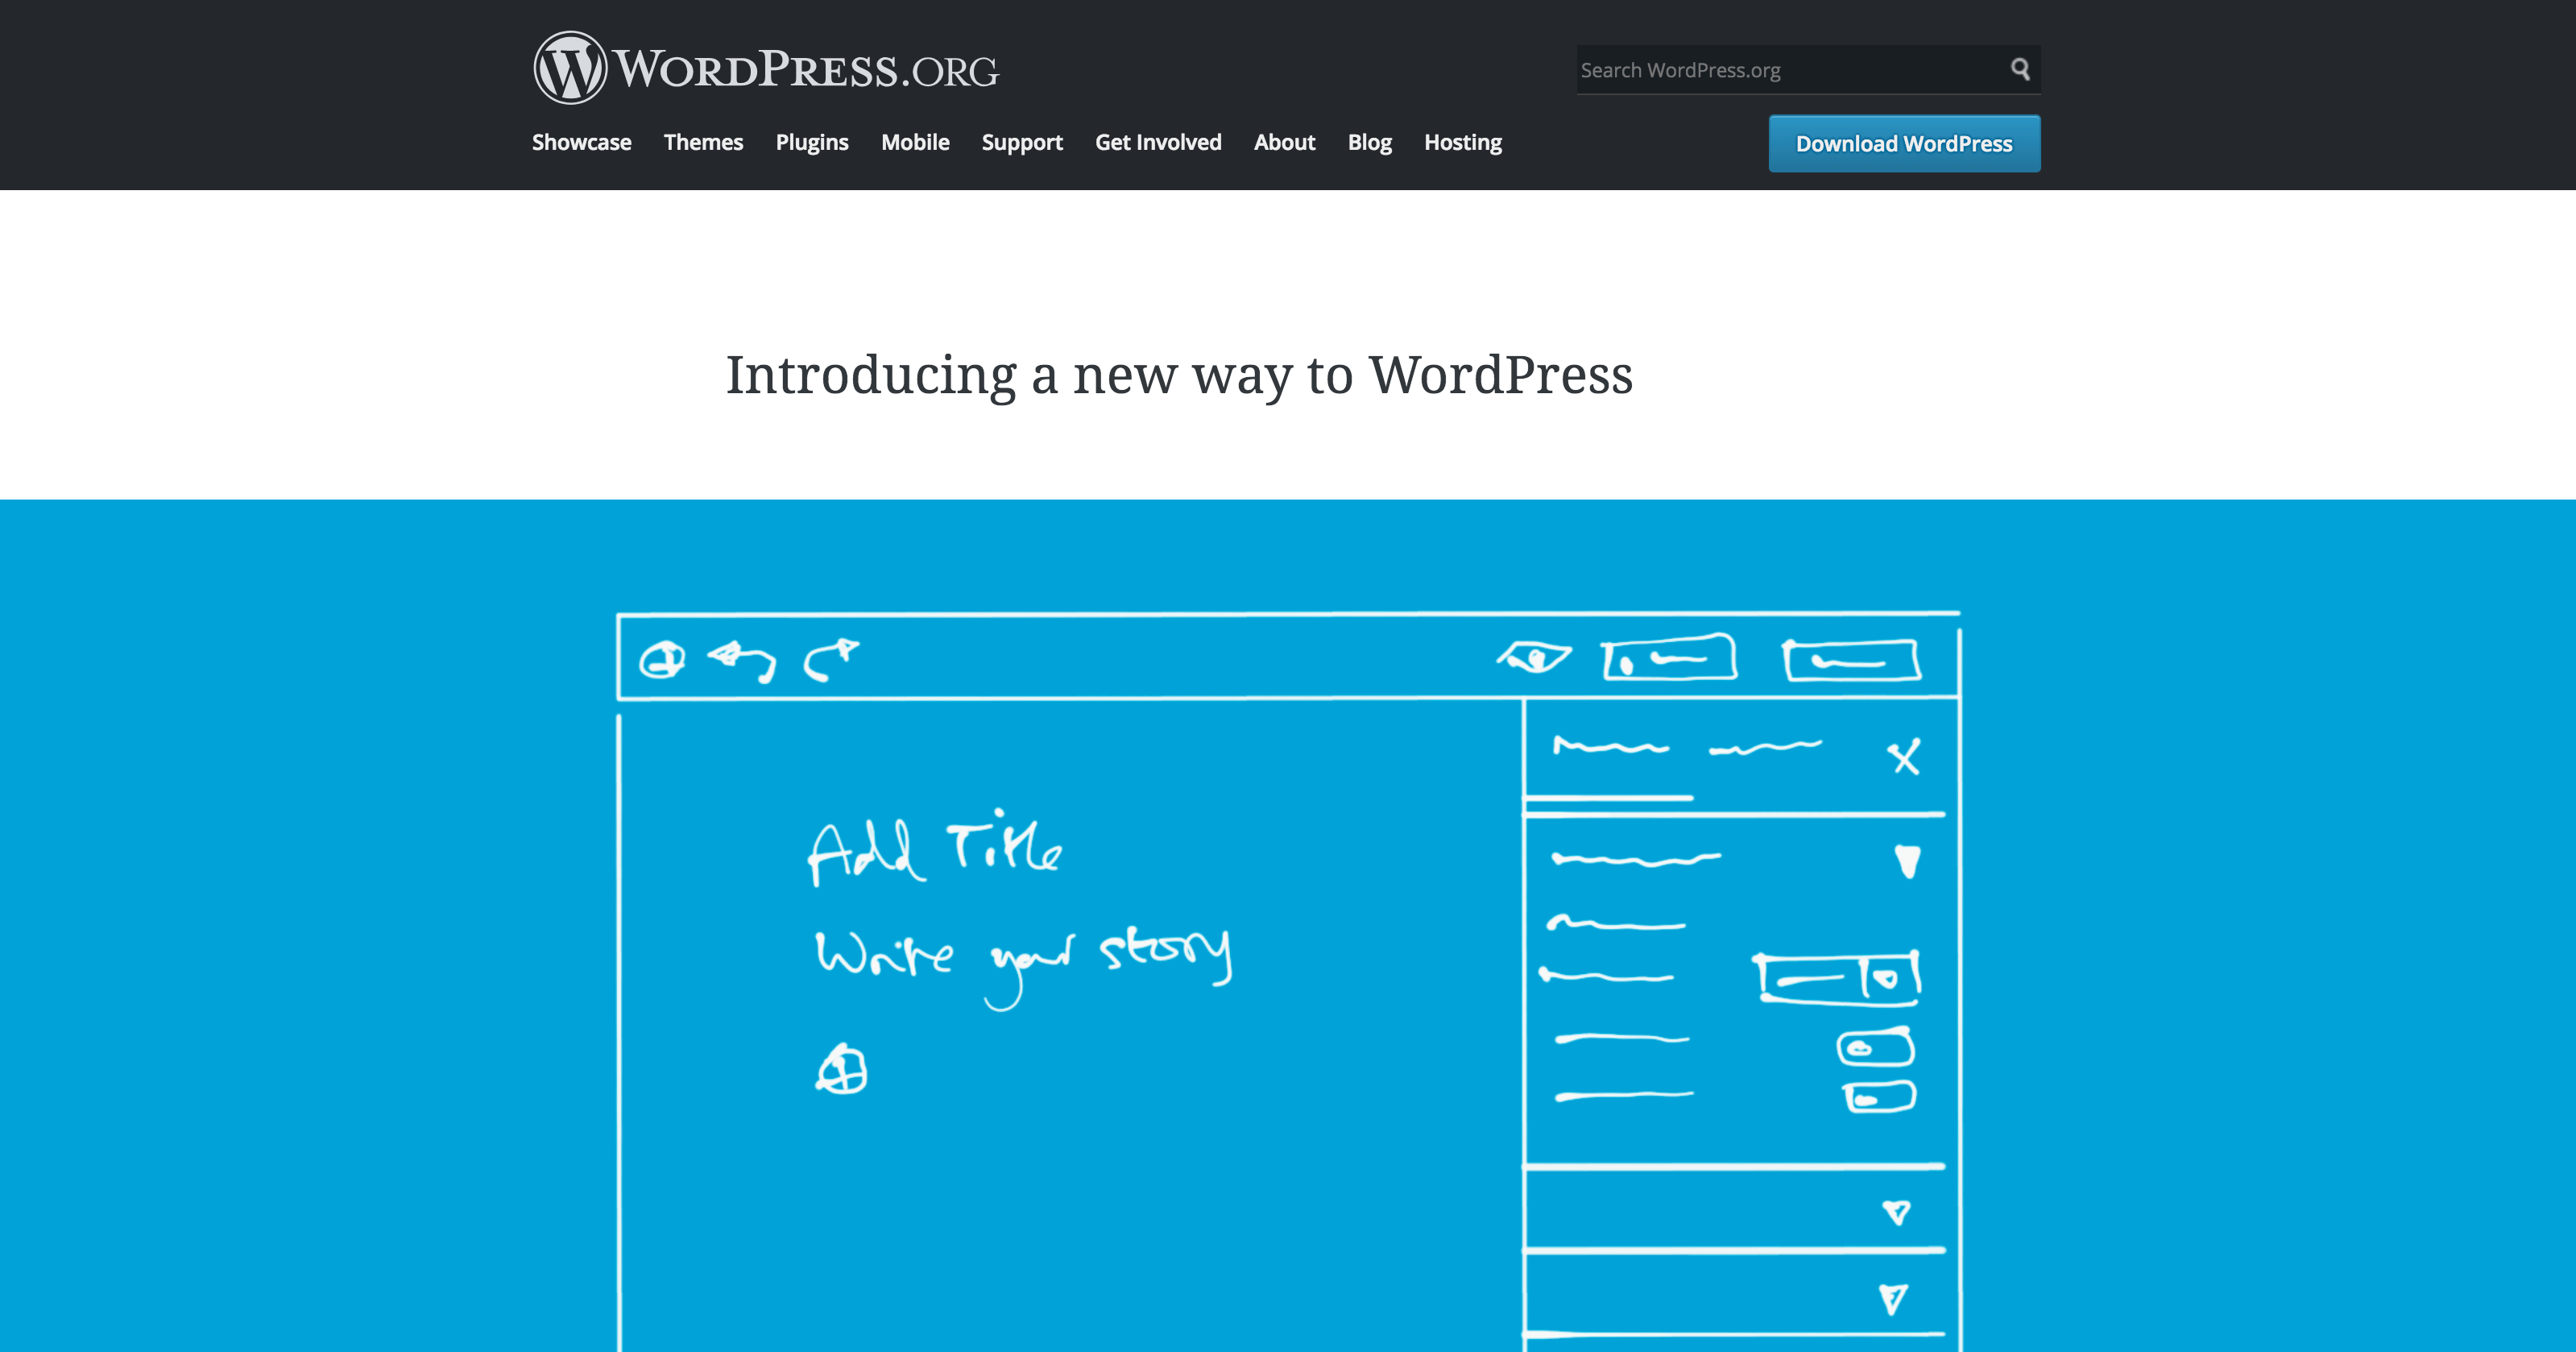 The home page for the Gutenberg project.